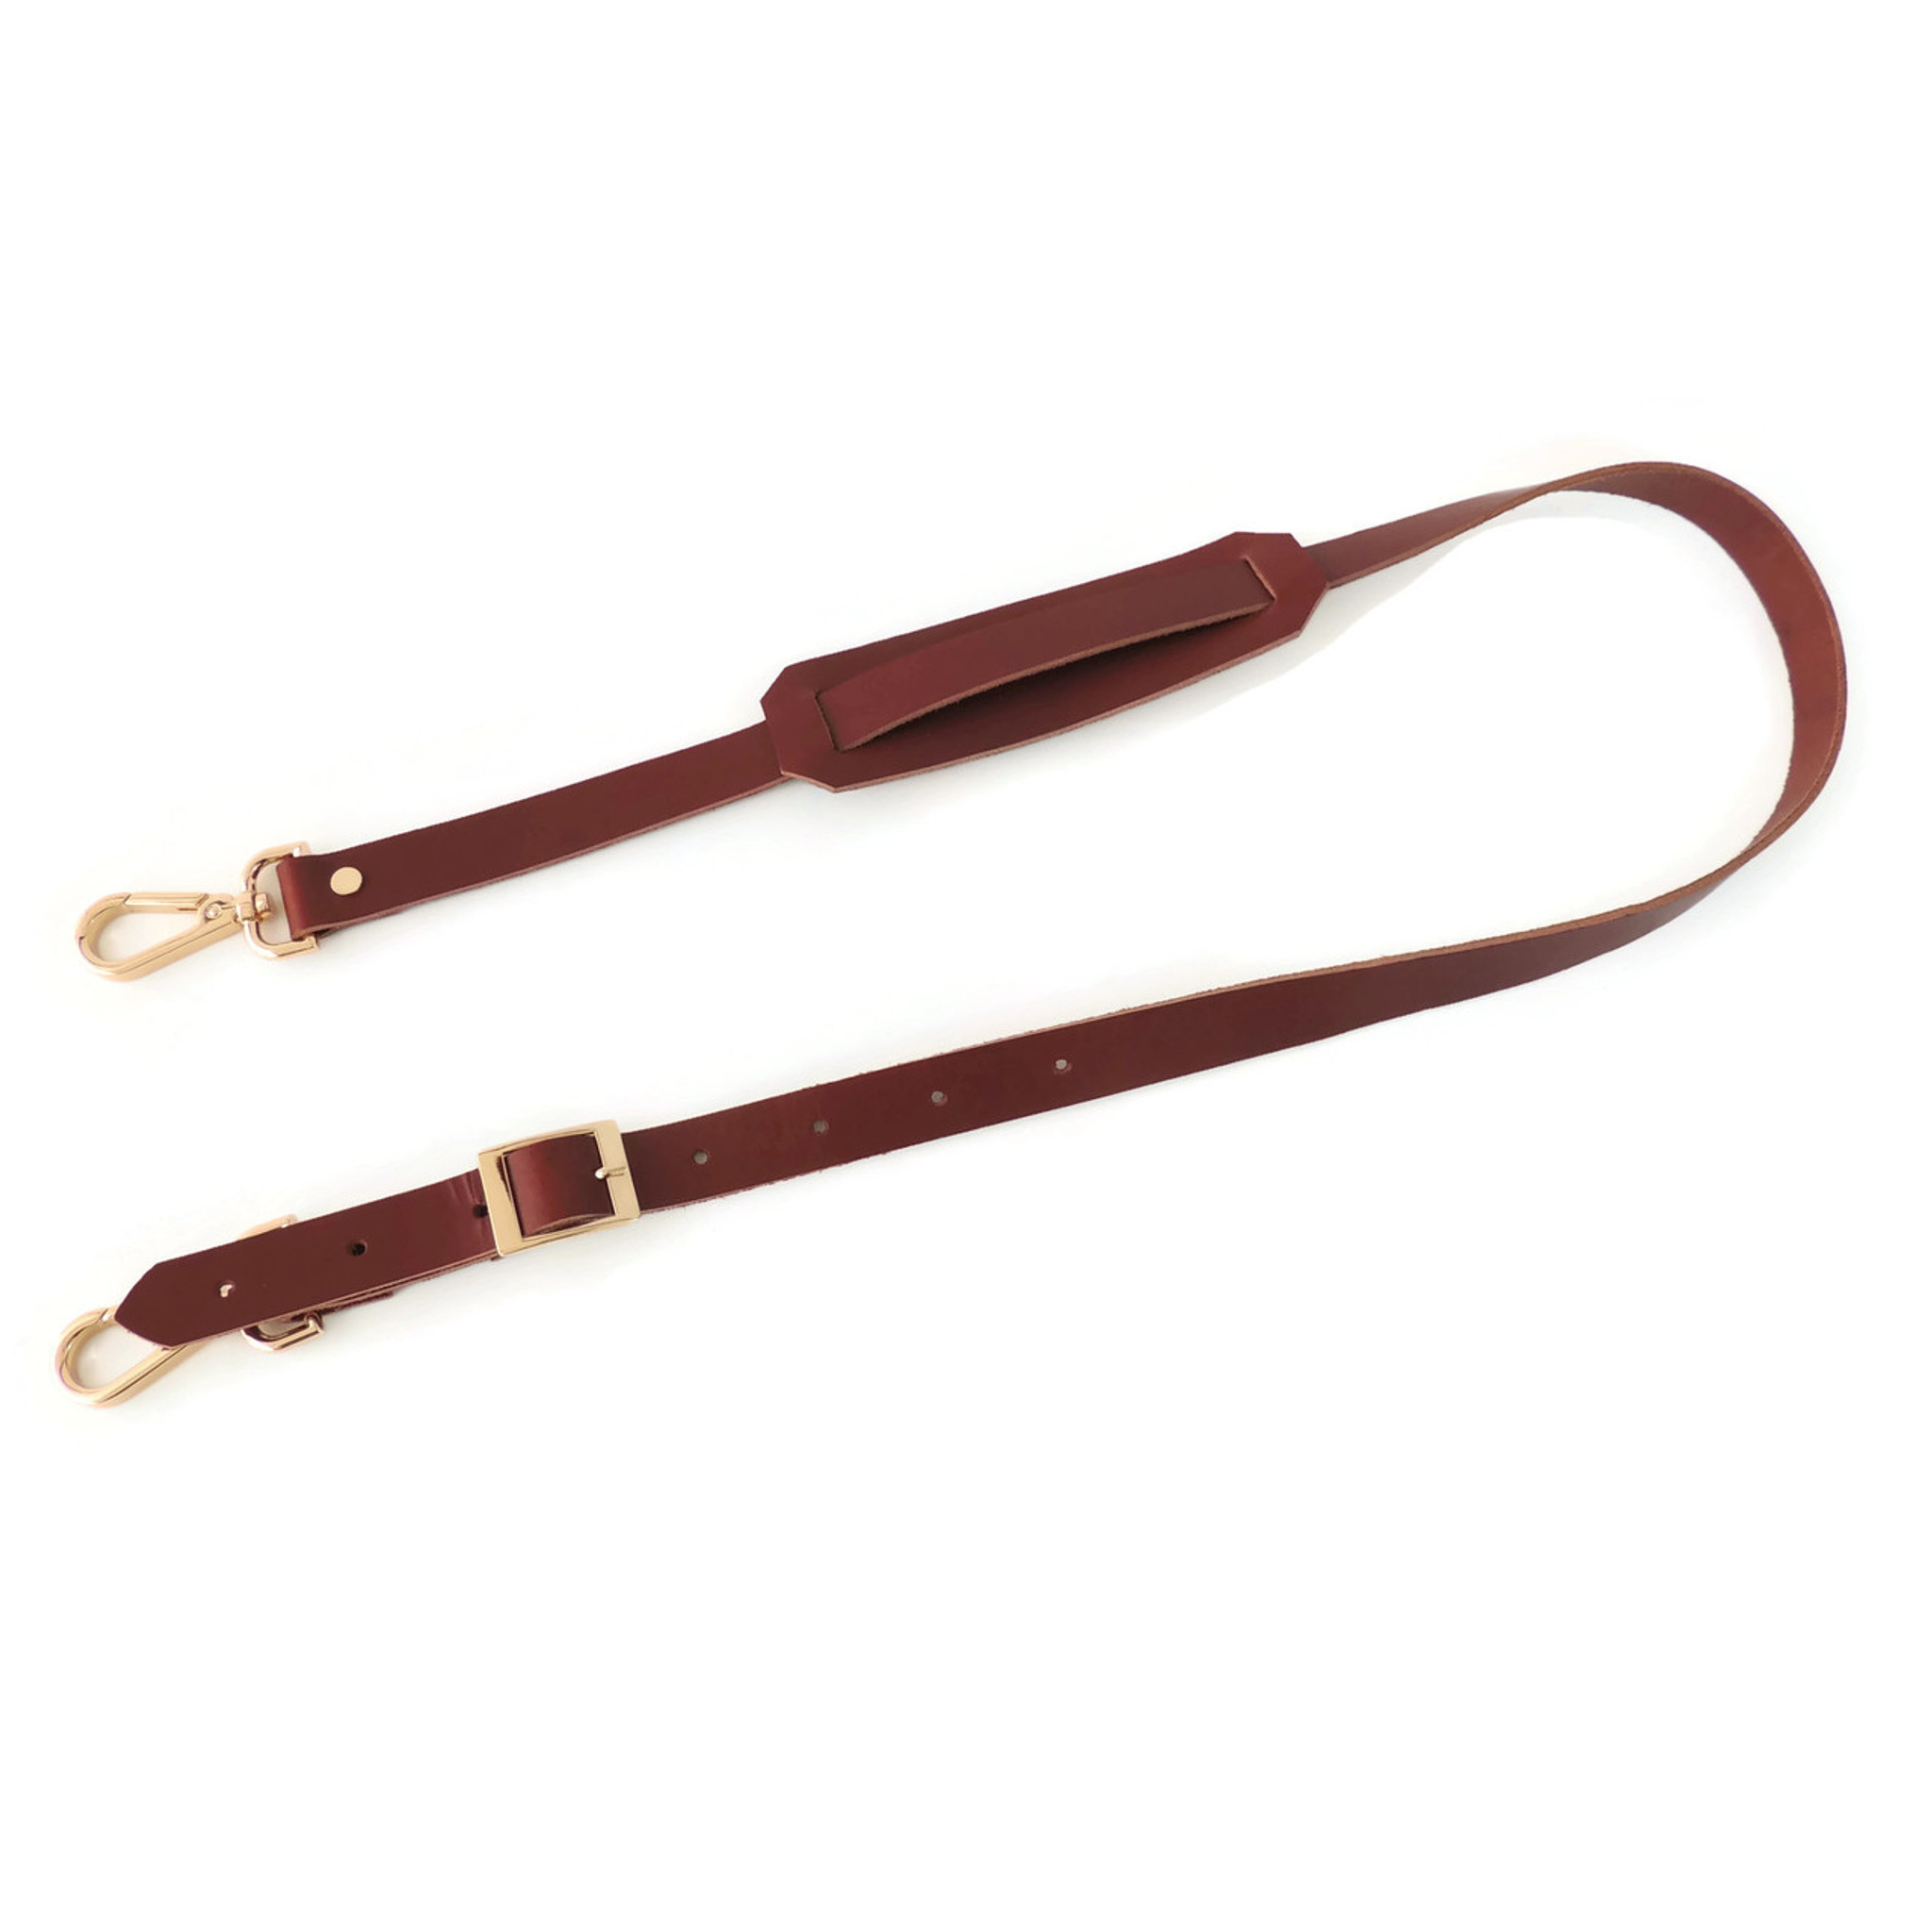 Shoulder Strap in Brown Leather with Gold Hardware